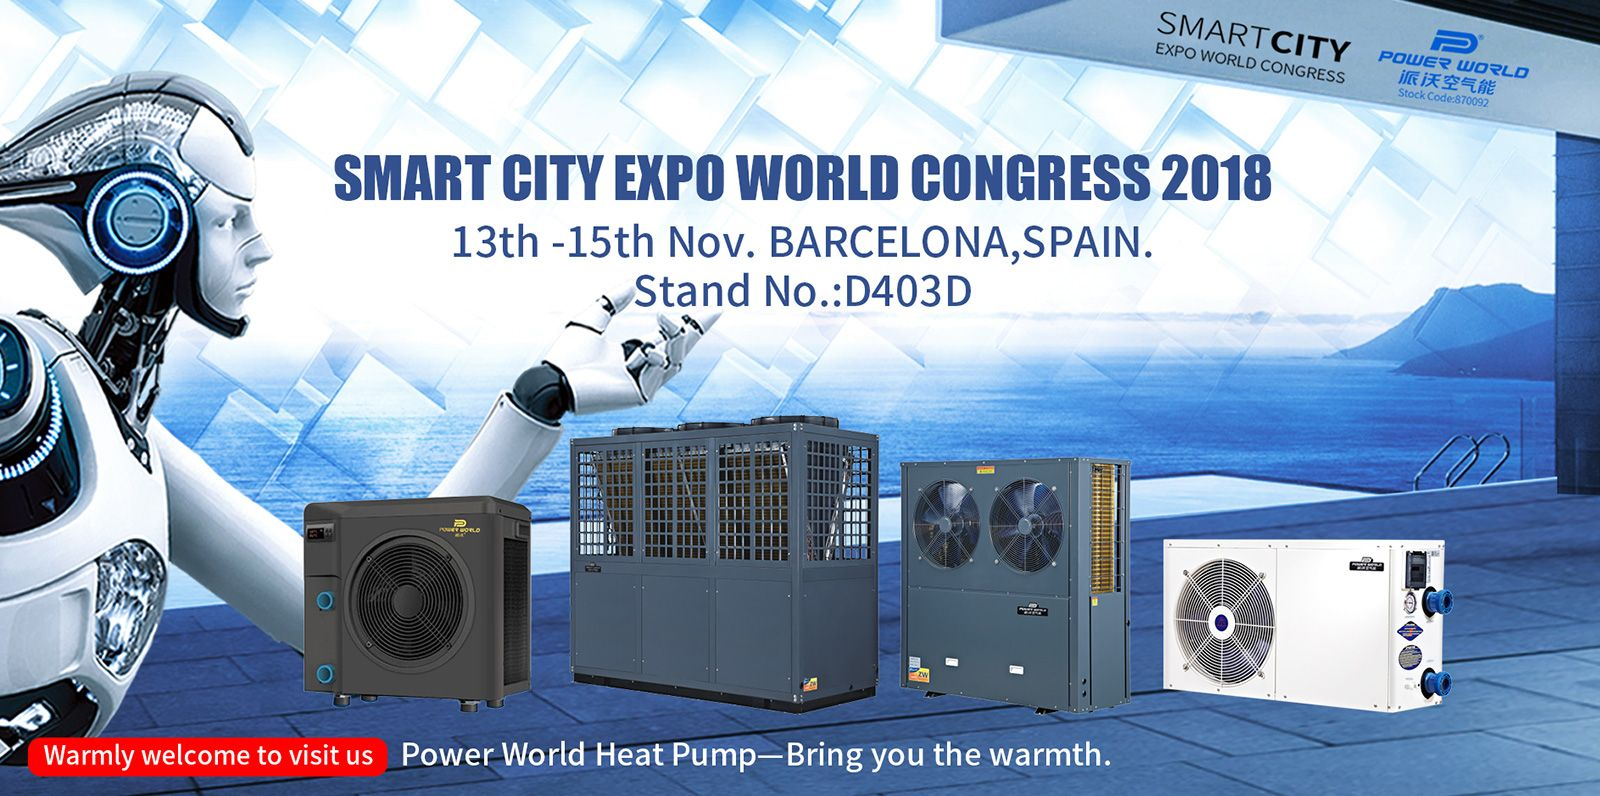 Power World Heat Pump hopes to meet you at SMART CITY EXPO